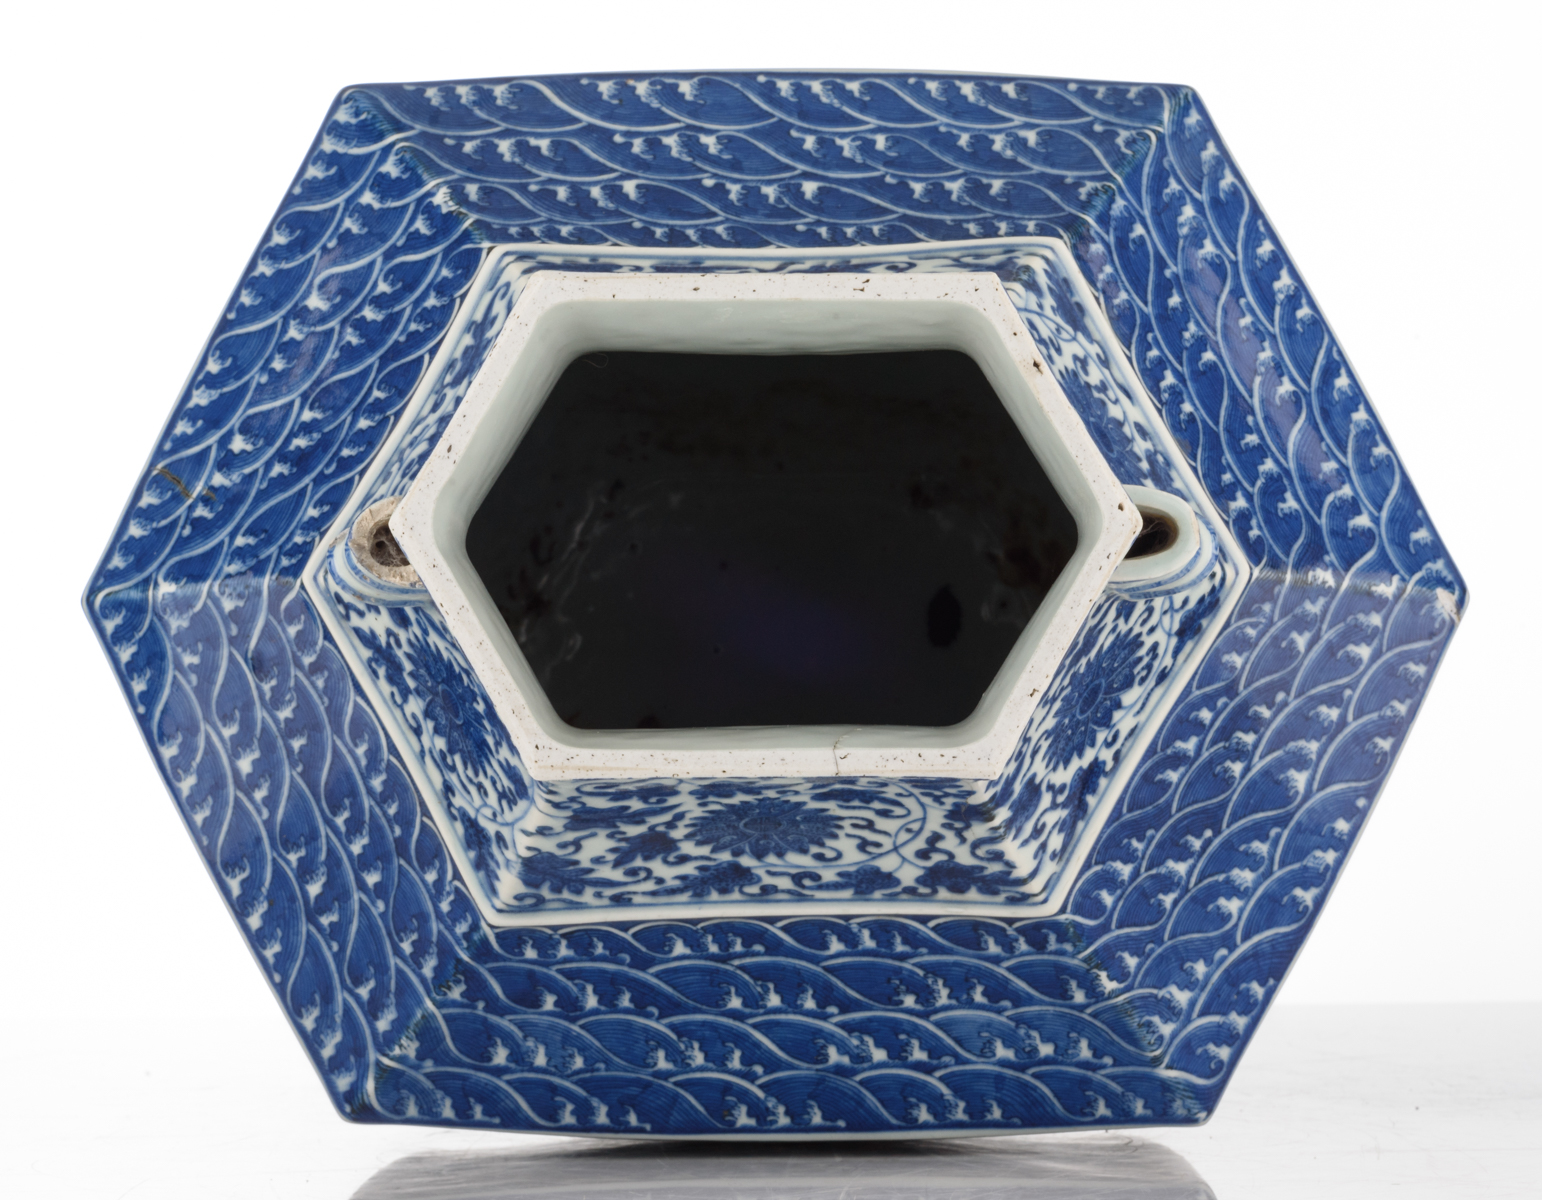 Lot 38 - A Chinese hexagonal blue and white hu vase, decorated with floral scrolls and shou signs on the